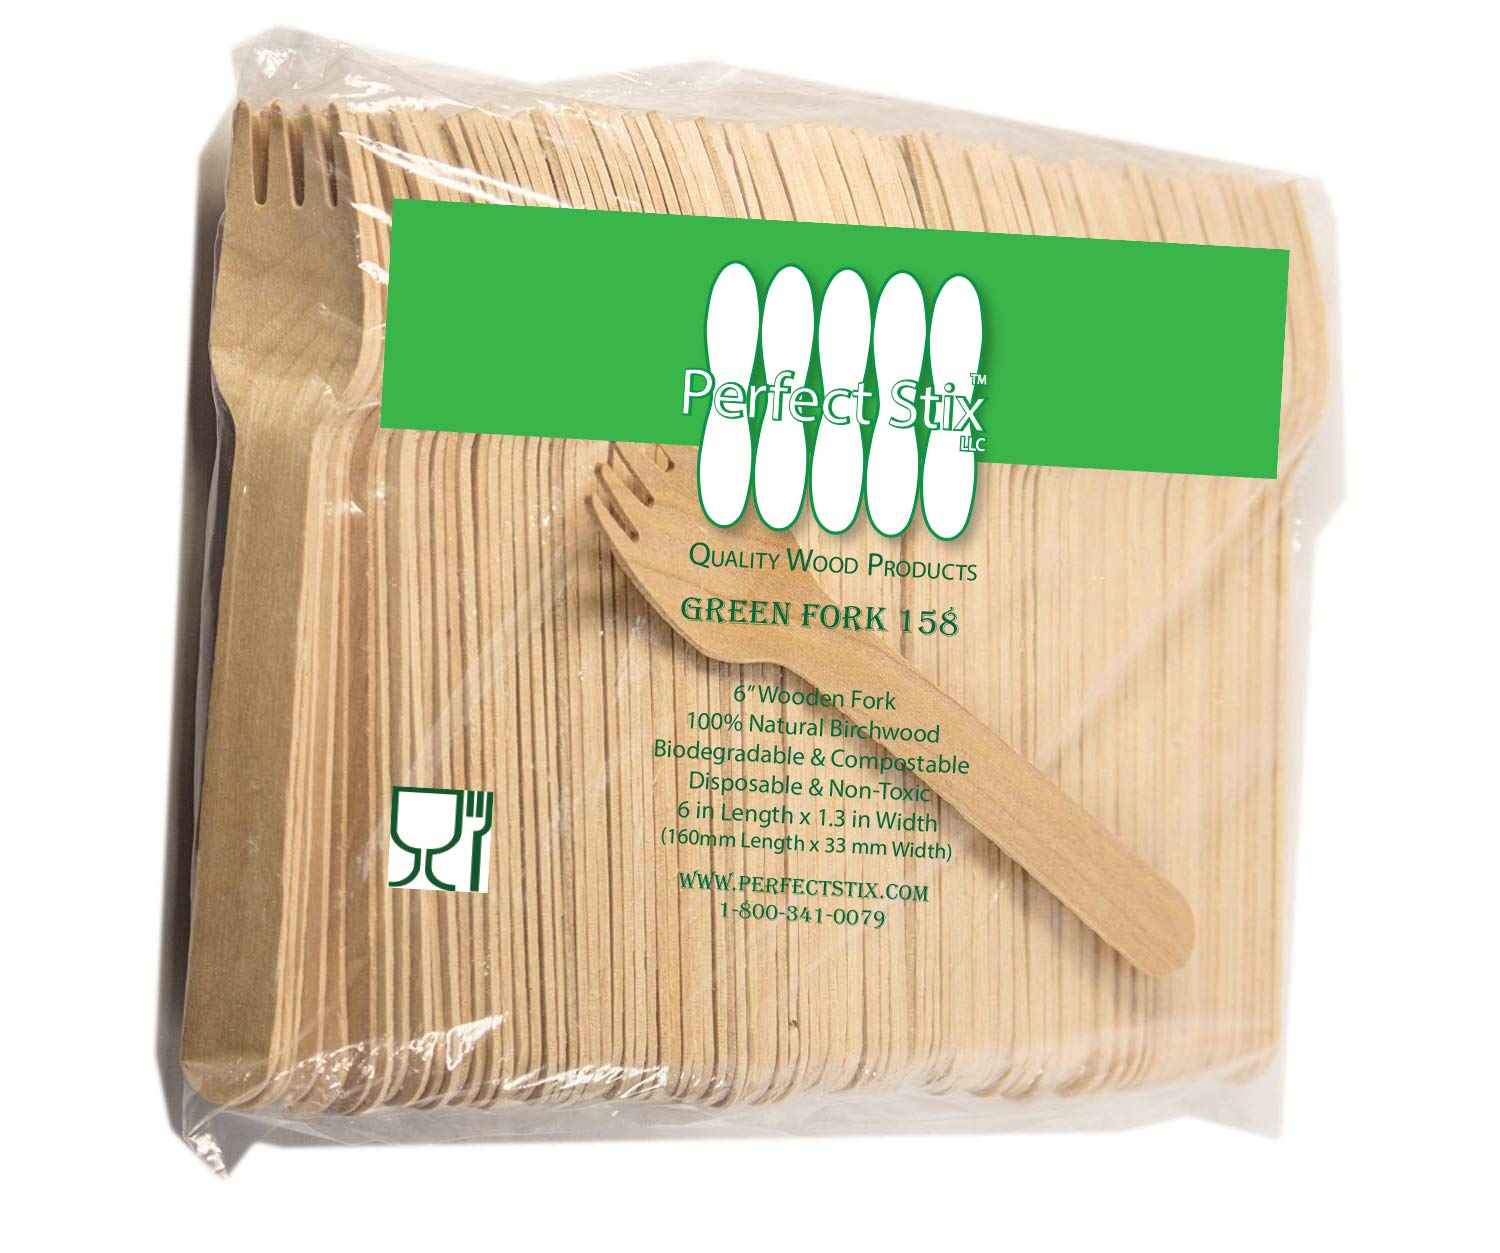 Pack of 200 Perfect Stix Green Fork 158-200ct Wooden Disposable Cutlery Forks 6 Length